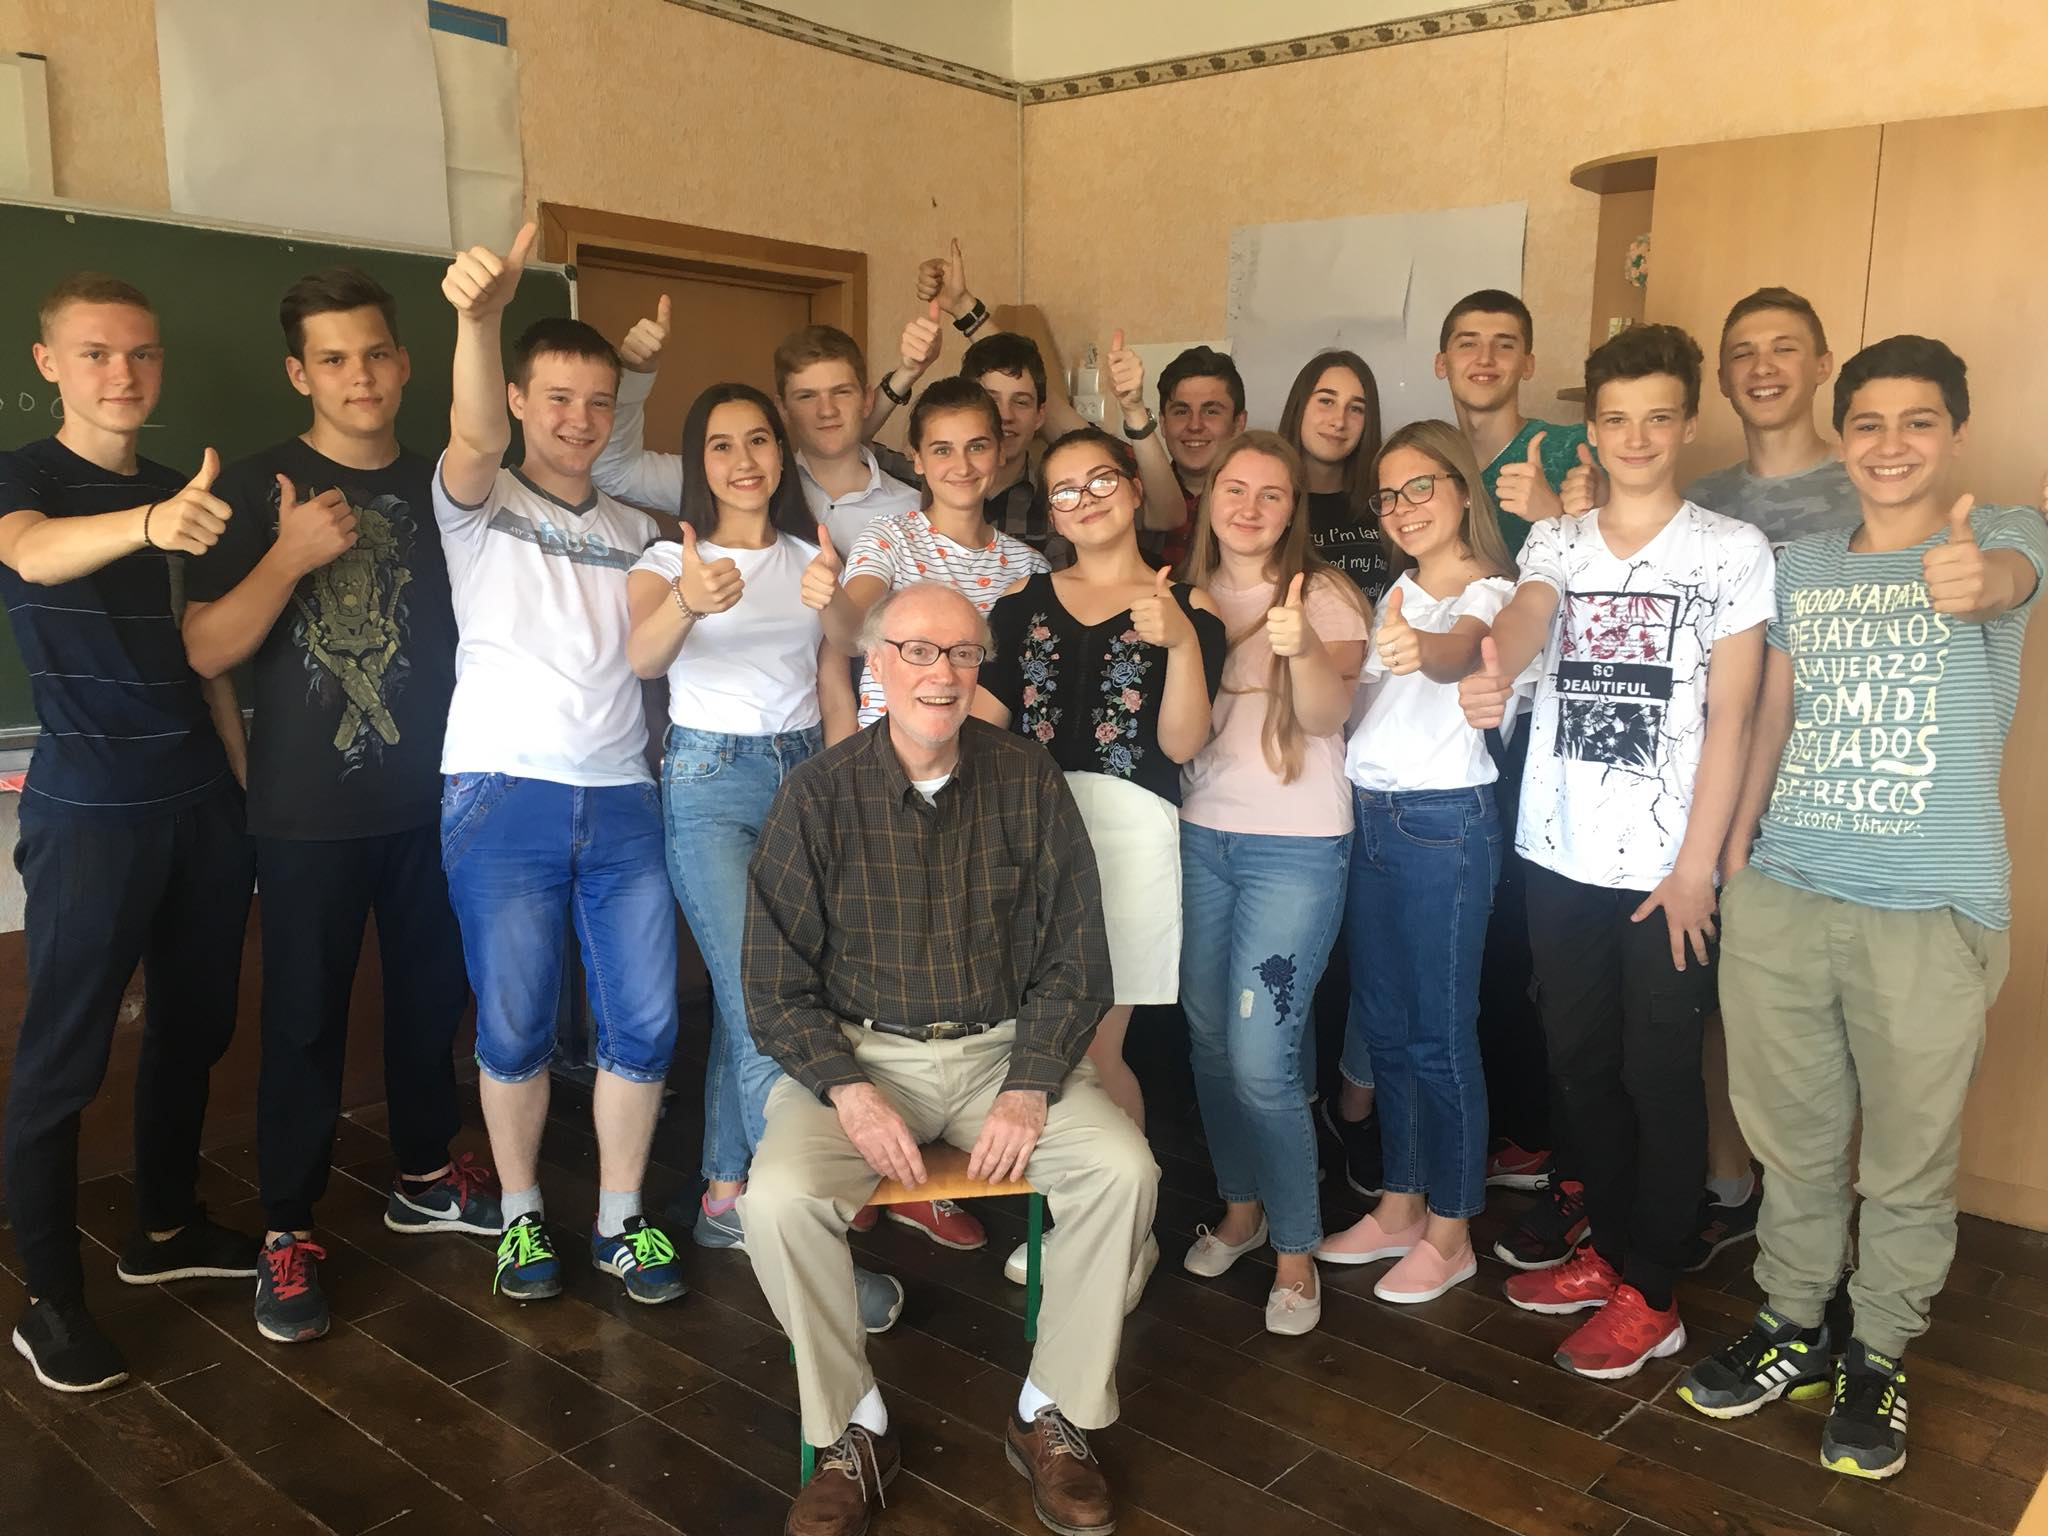 Lunch and Learn: Larry Hurto and teaching English in Ukraine